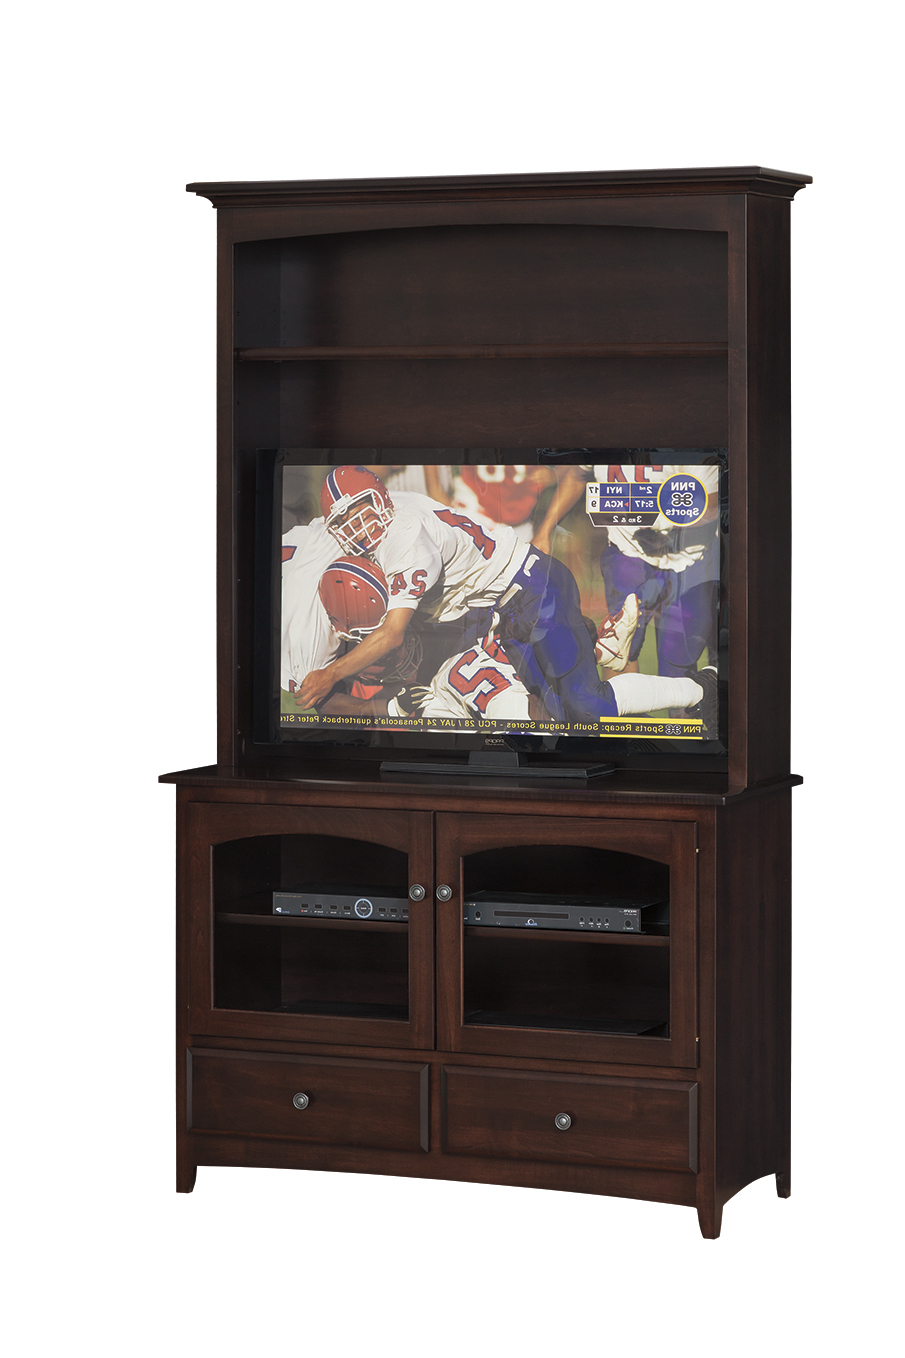 Amish Custom Furniture Throughout Corner Tv Stands For 46 Inch Flat Screen (Gallery 16 of 20)